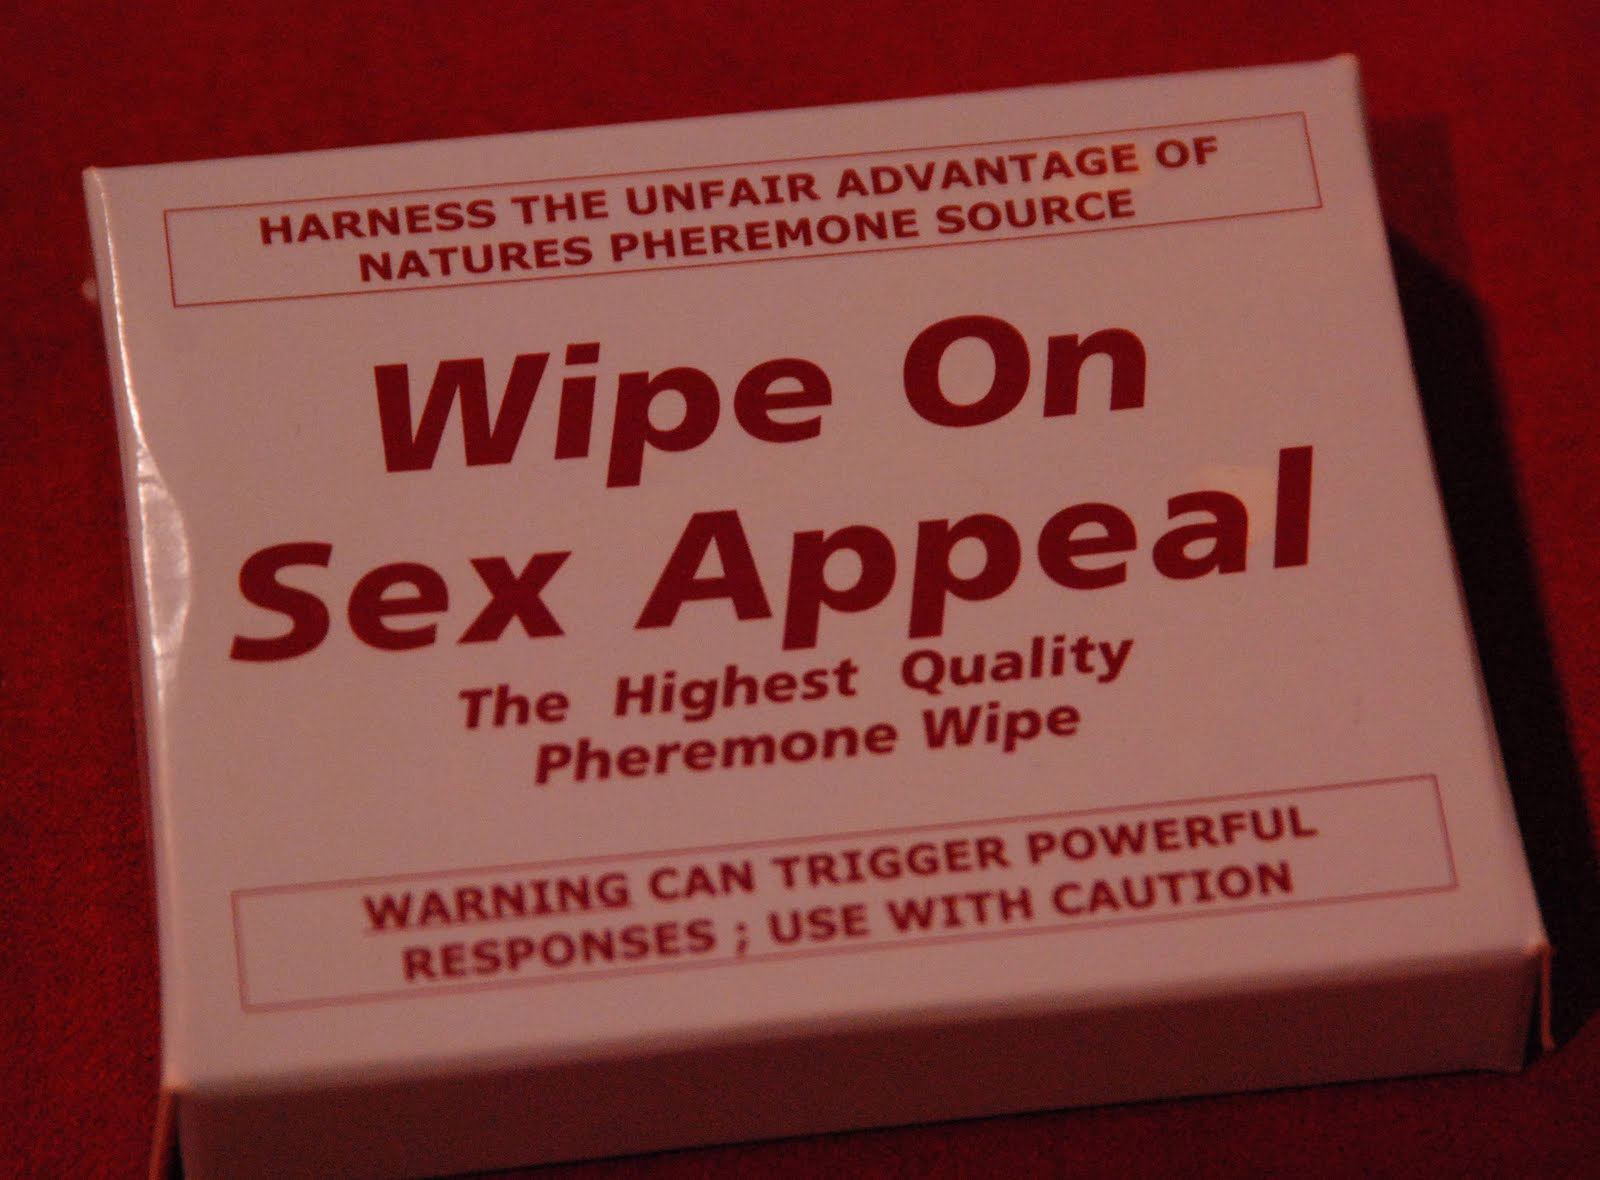 What's the deal with pheromone wipes?!